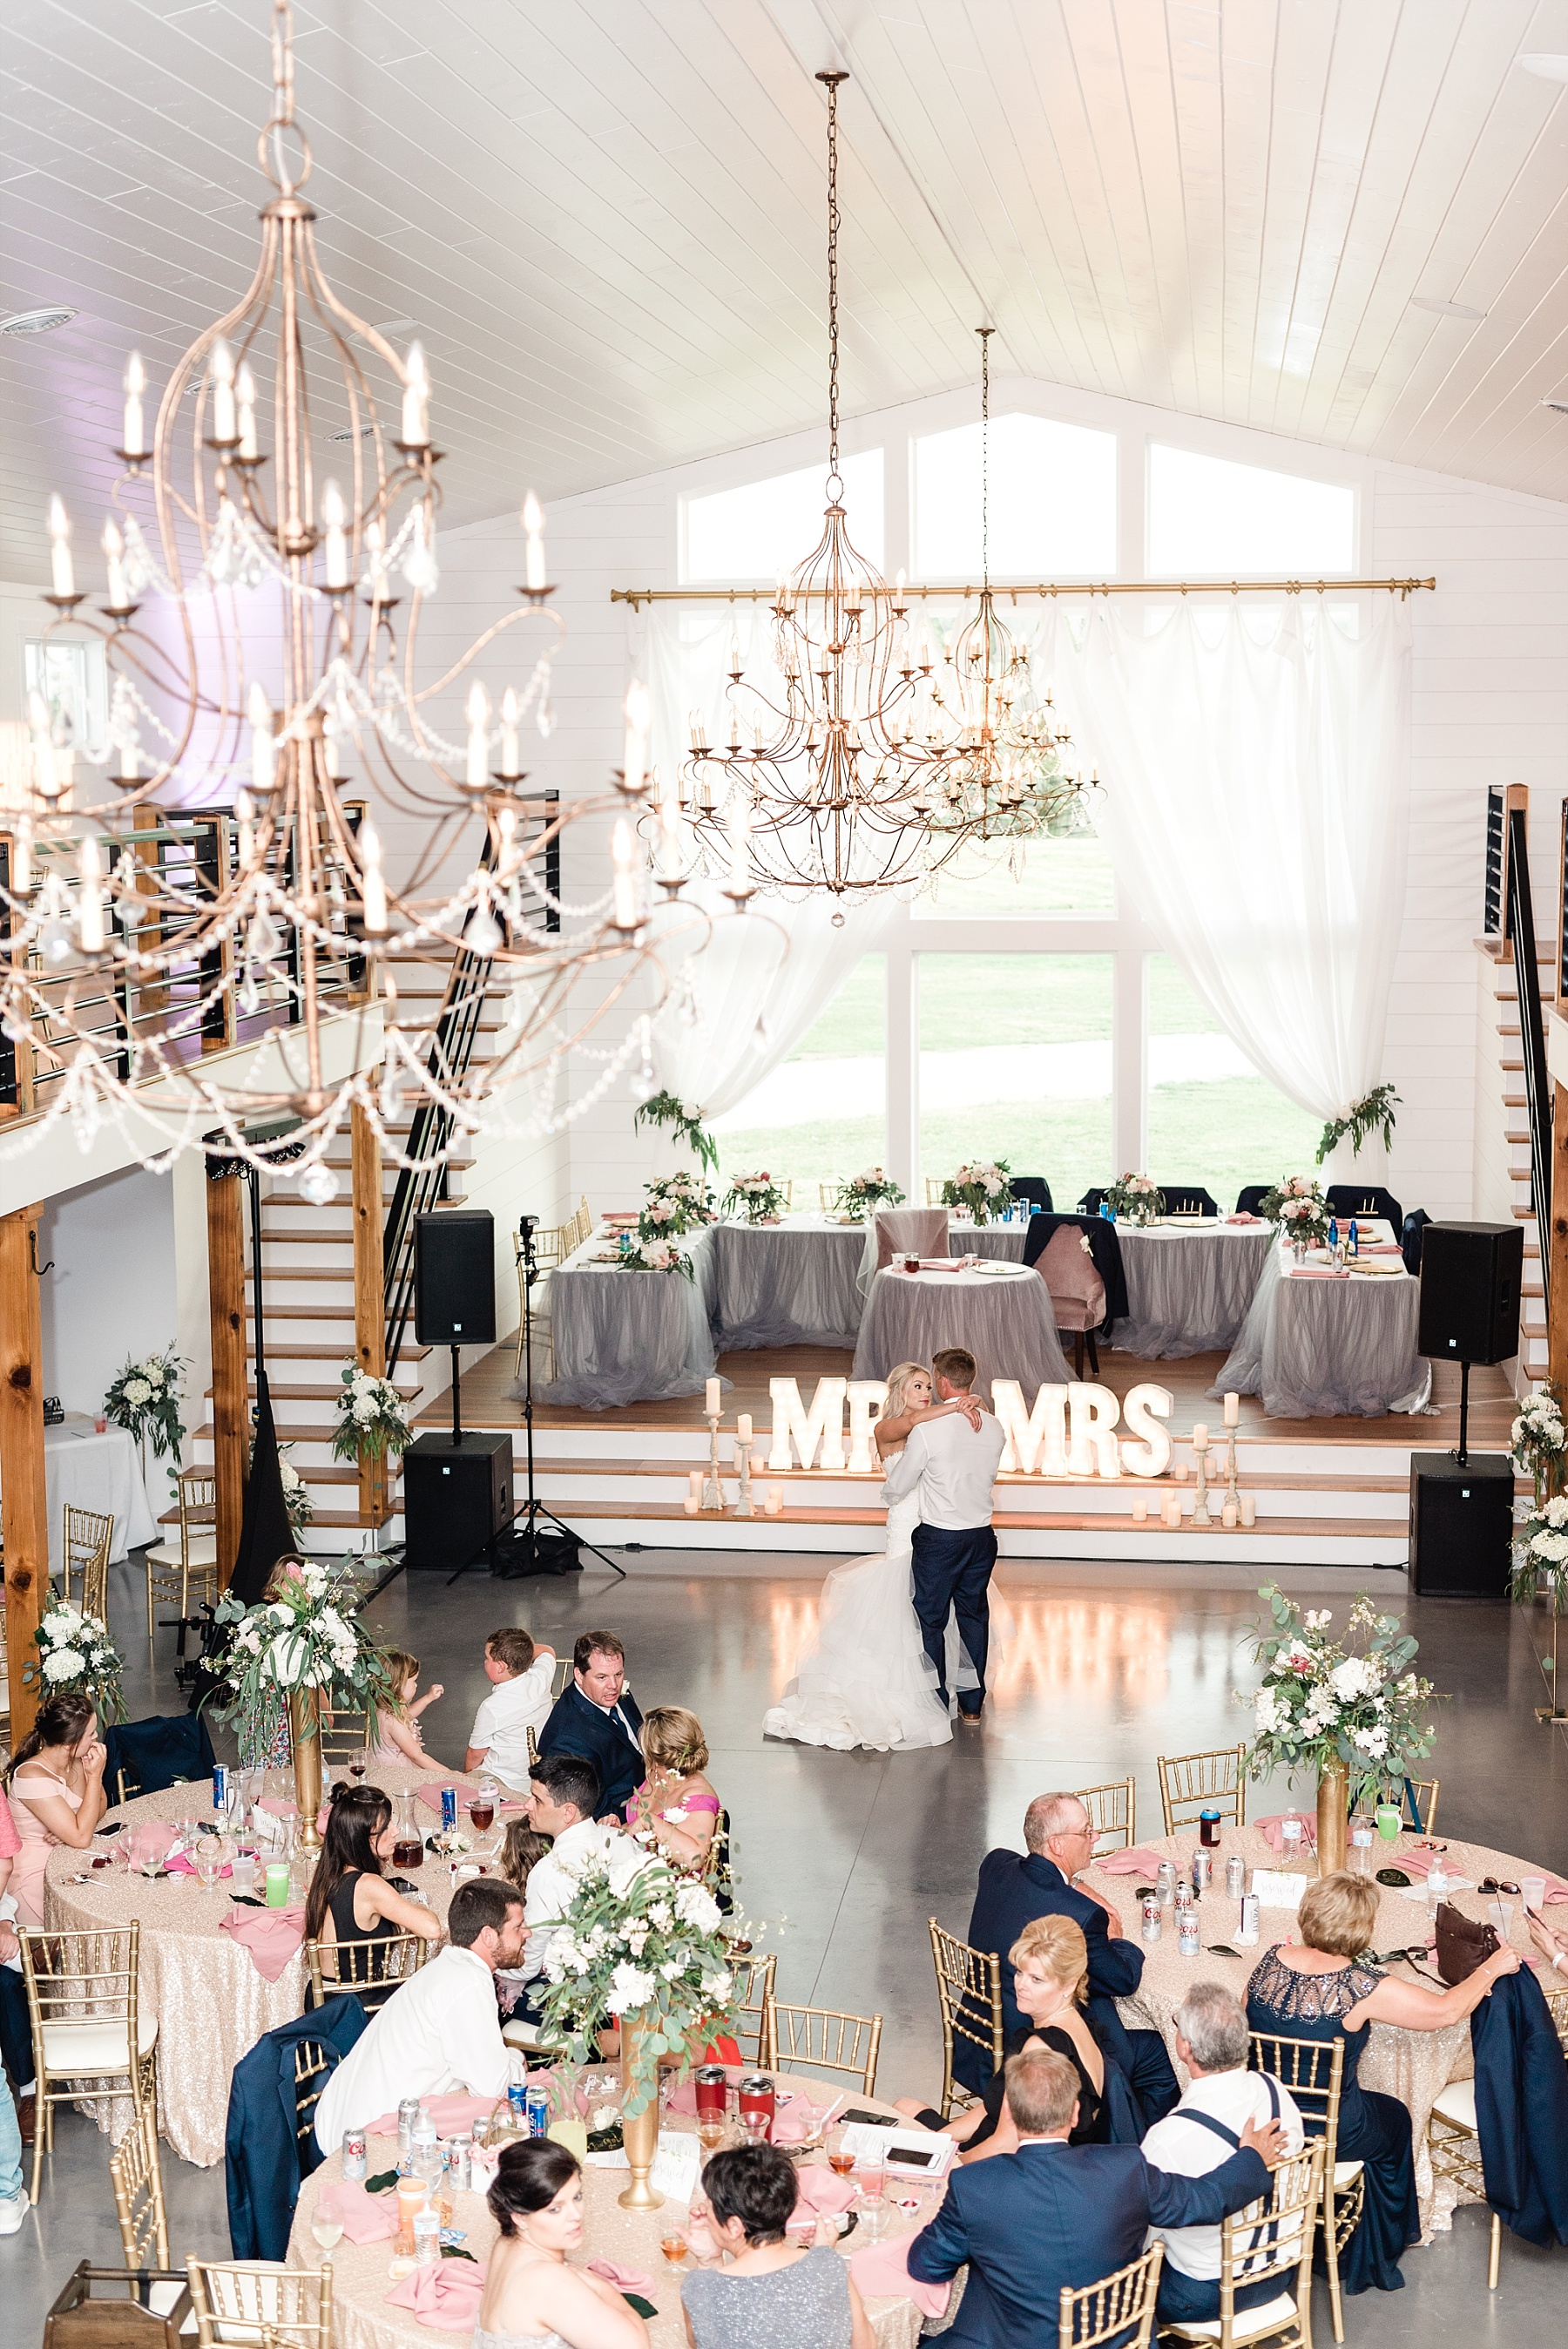 Stunning Heartfelt, Elegant, Fine Art, Chic, Outdoor Spring Wedding with Blush, Cream, Greenery, Rose Gold, and Sequins at Emerson Fields Venue by Kelsi Kliethermes Photography_0063.jpg